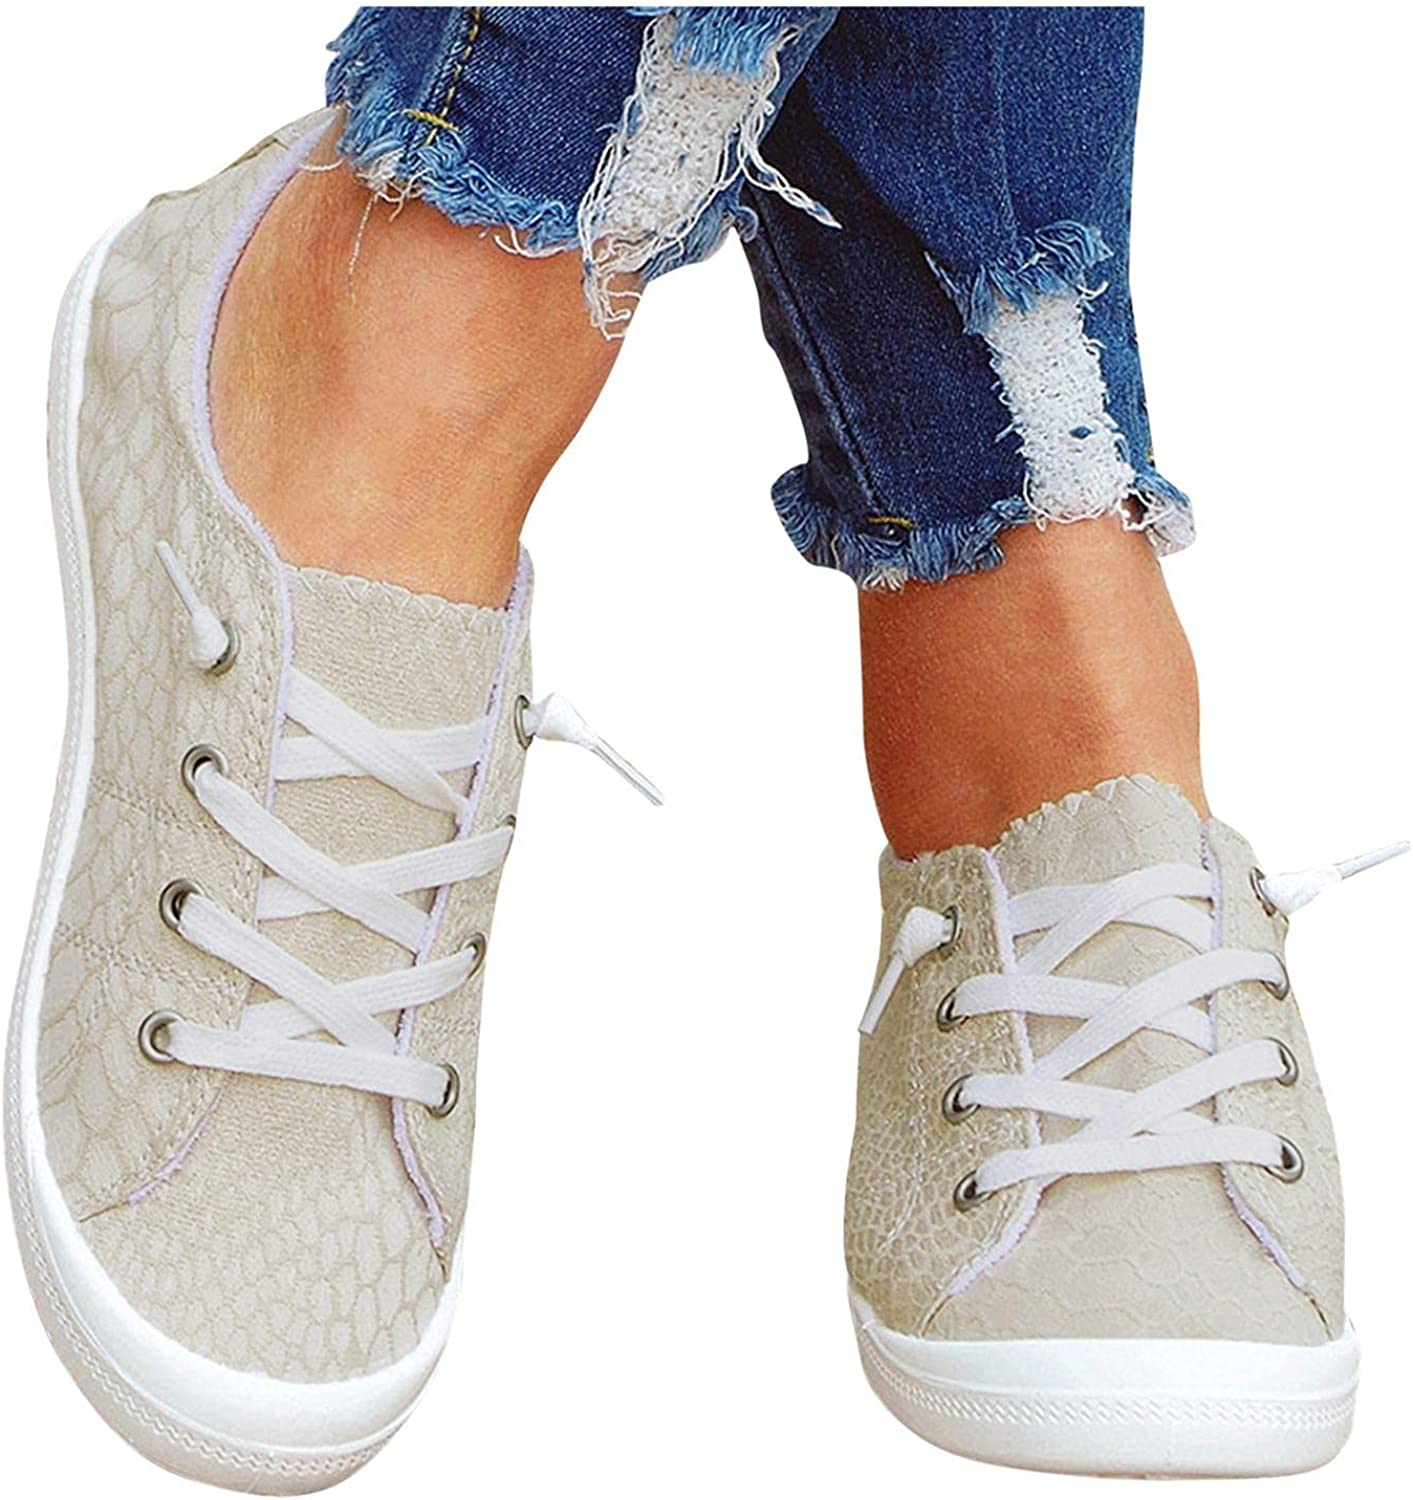 Hbeylia Low Top Canvas Shoes For Women Girls Fashion Sneakers Fashion Casual Lace Up Slip On Flats Walking Shoes Soft Lightweight Outdoor Running Sports Play Sneakers For Students School Work